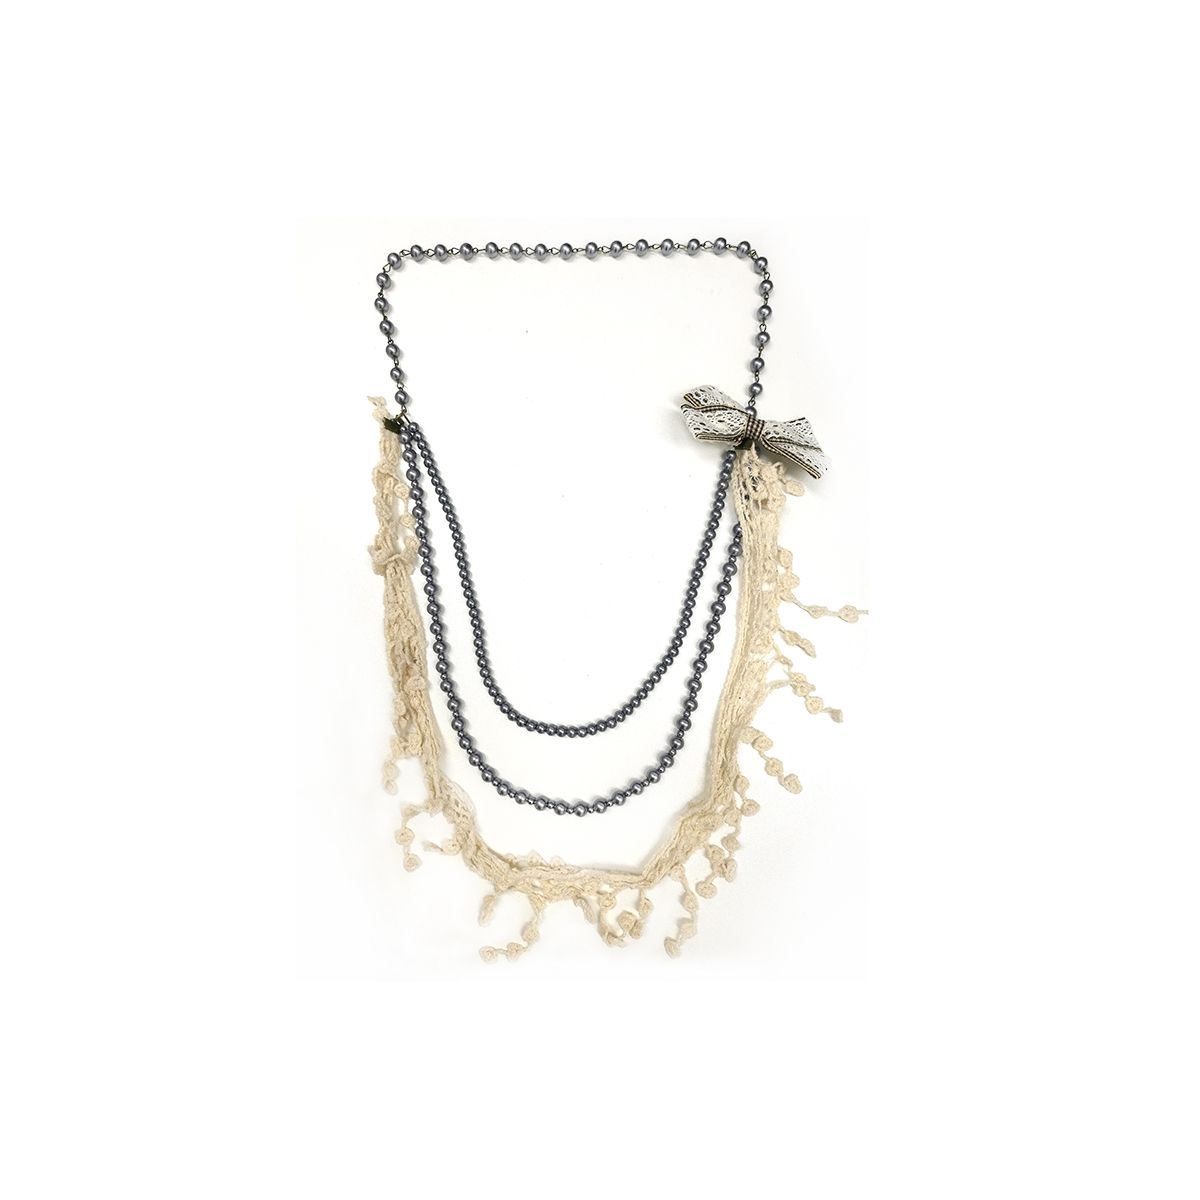 Beads with Lace Bow Necklace - White (OLD110134WB)